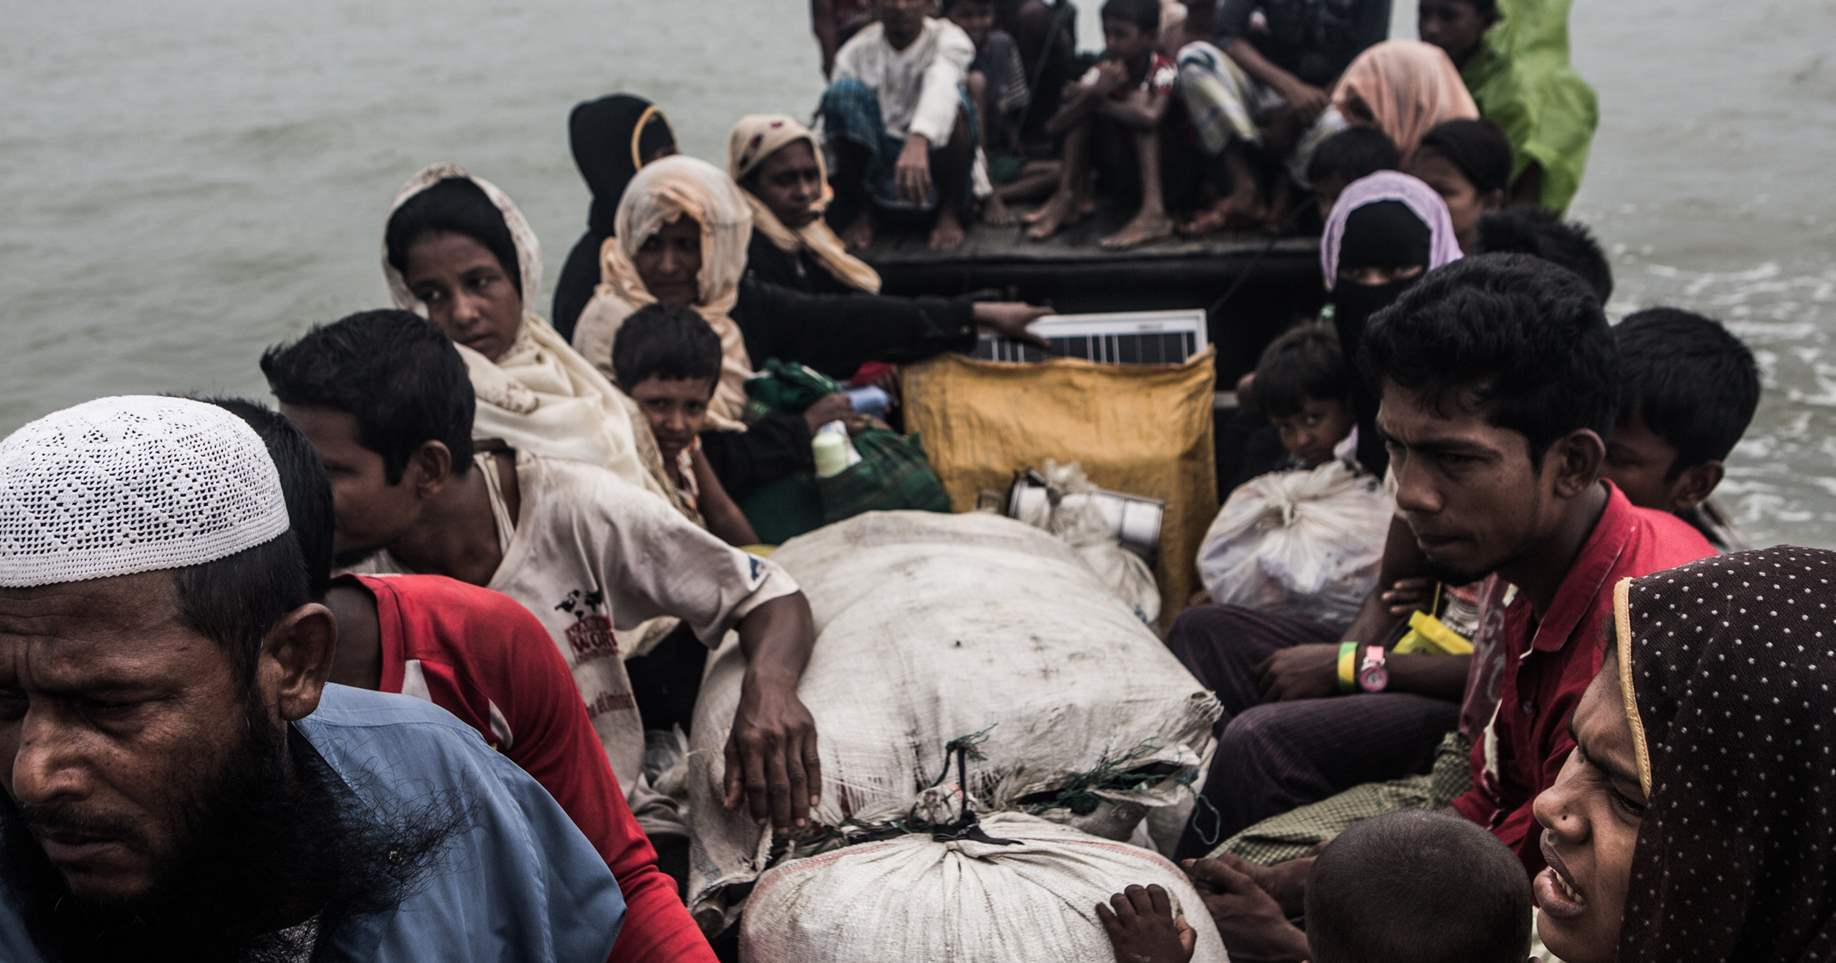 Bangladesh: Rescued Rohingya refugees require immediate care and protection